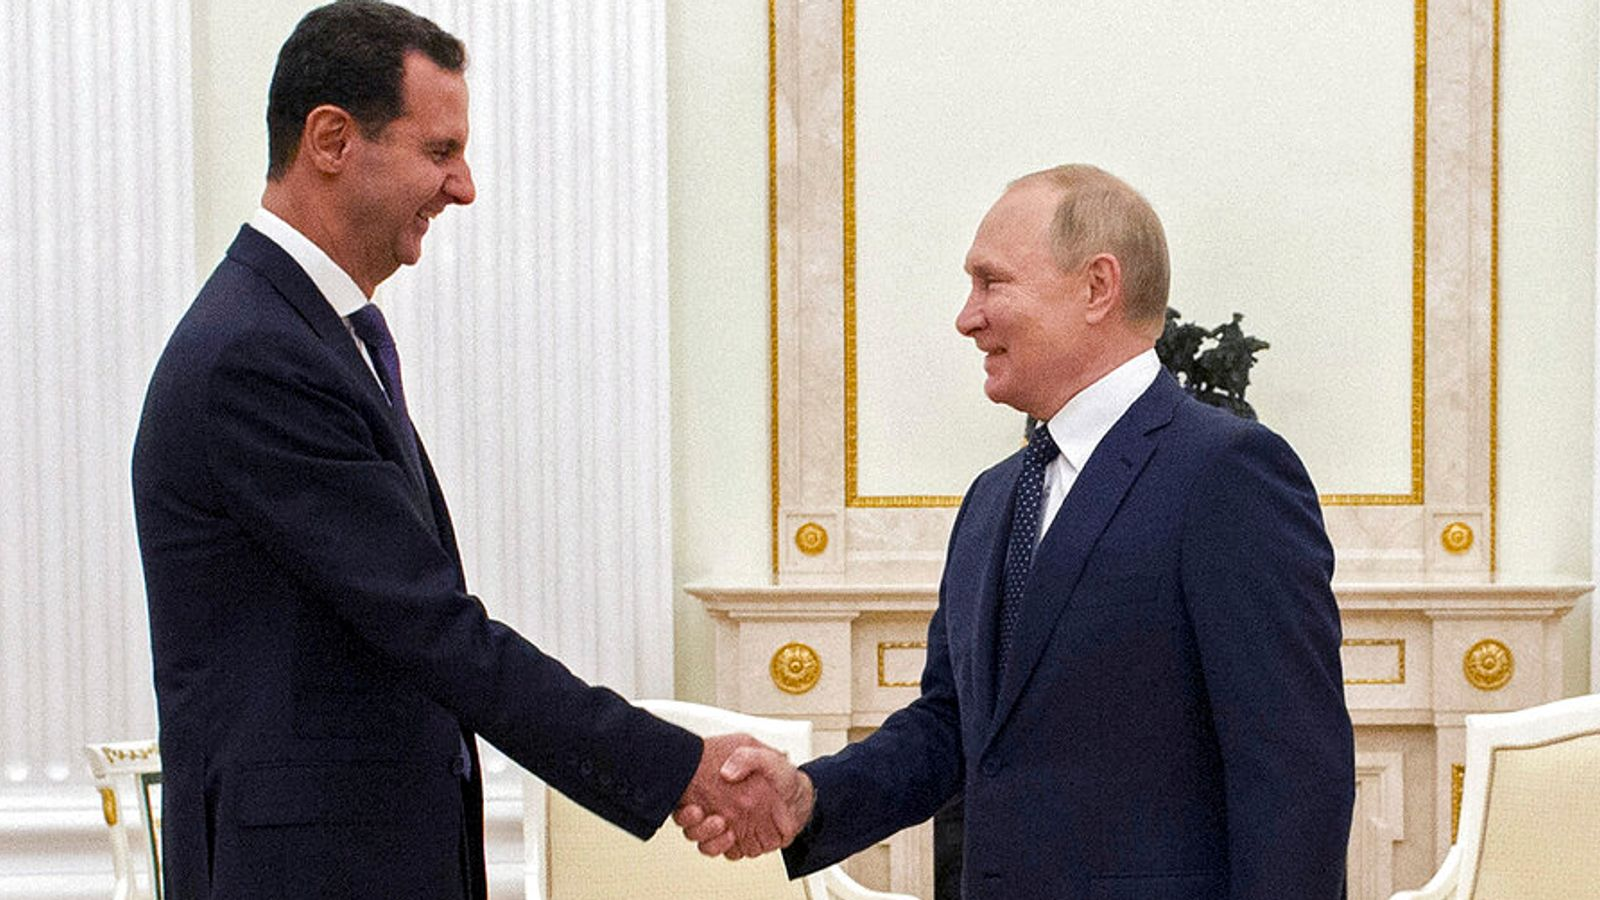 Putin heralds Assad's win over 'terrorists' as they meet in Moscow for first time since 2015